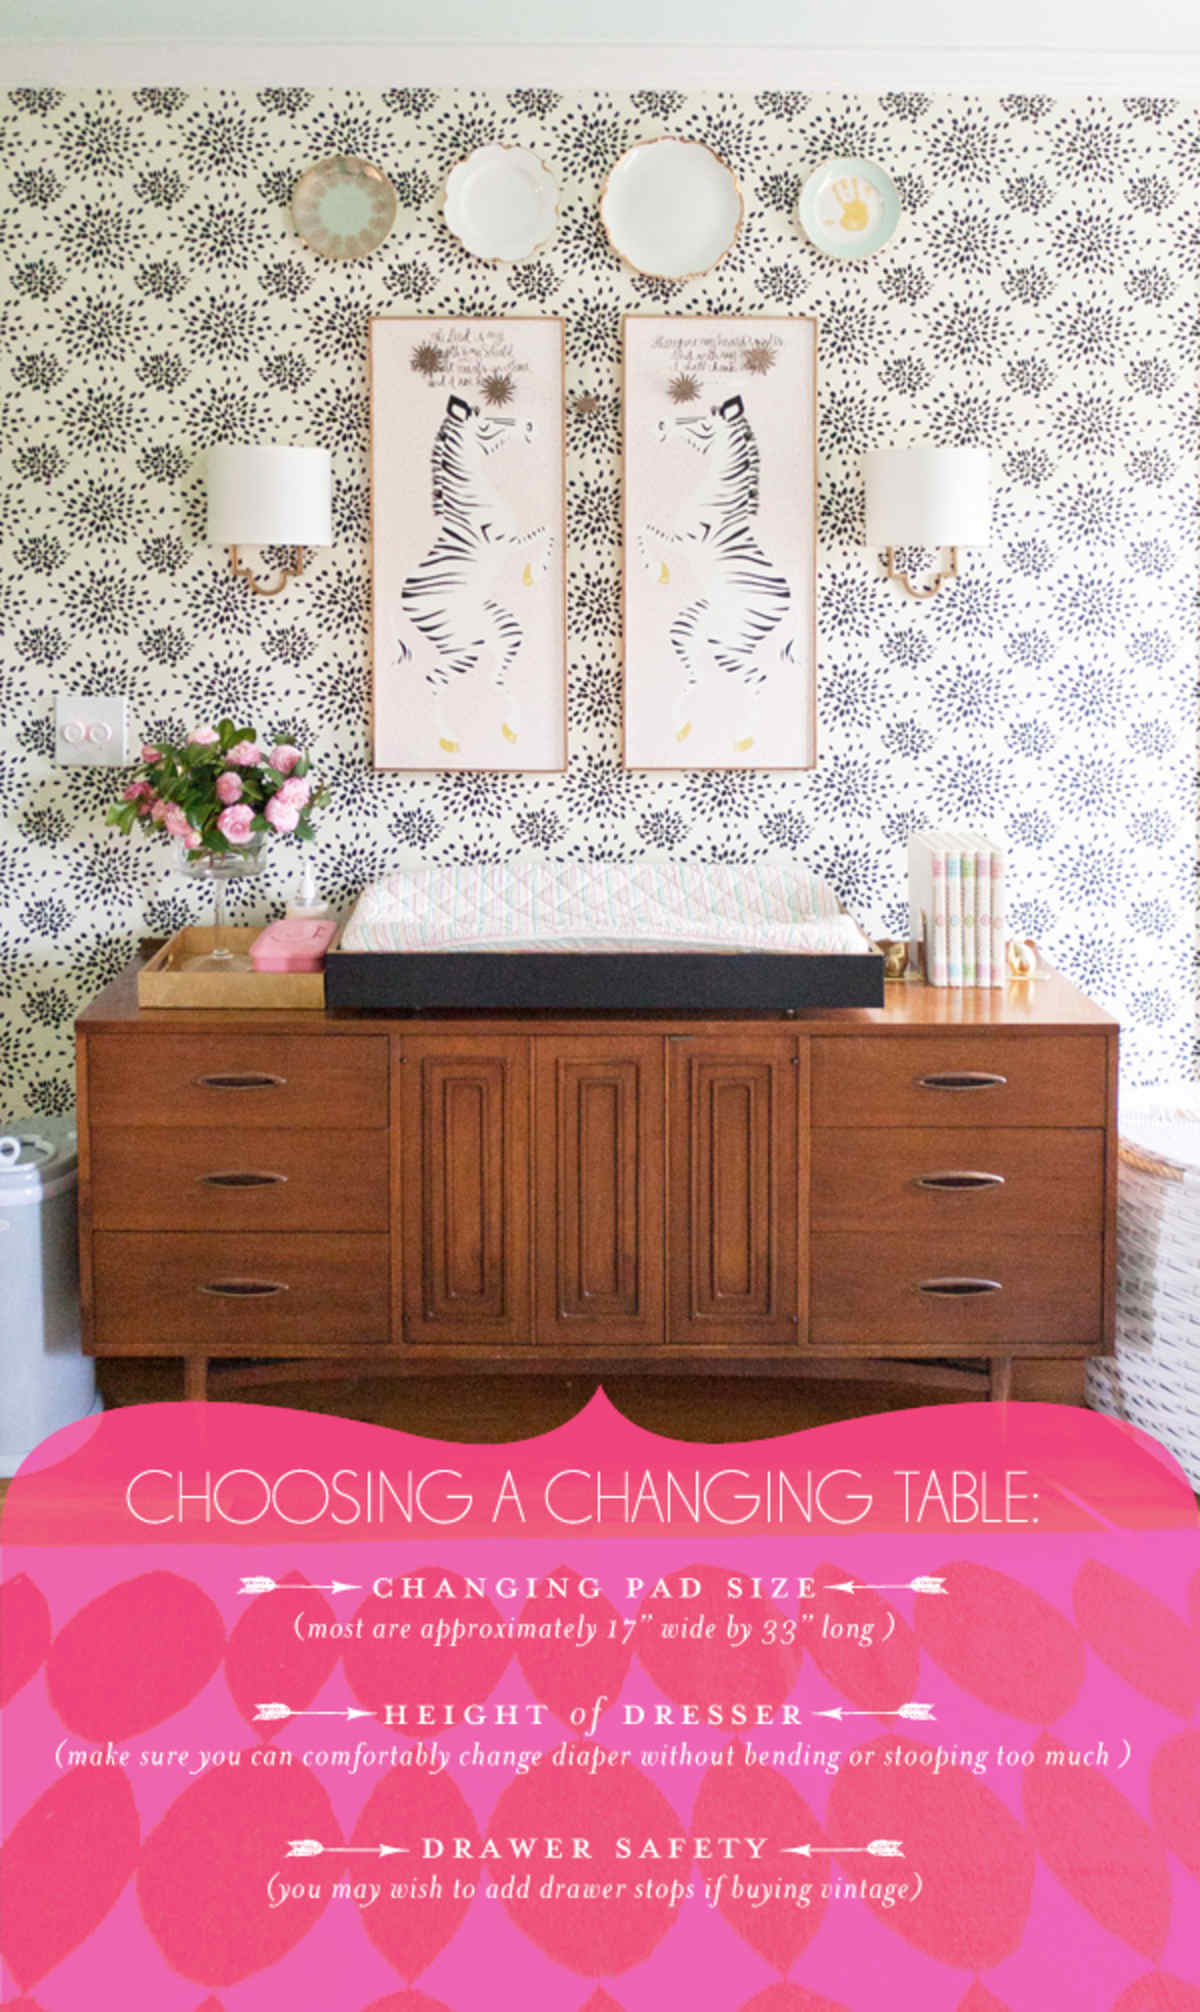 Recently, A Friend Of Mine Had A Few Questions About Choosing A Changing  Table, As She Is Planning On Going The Vintage Route. I Thought It Might Be  Helpful ...